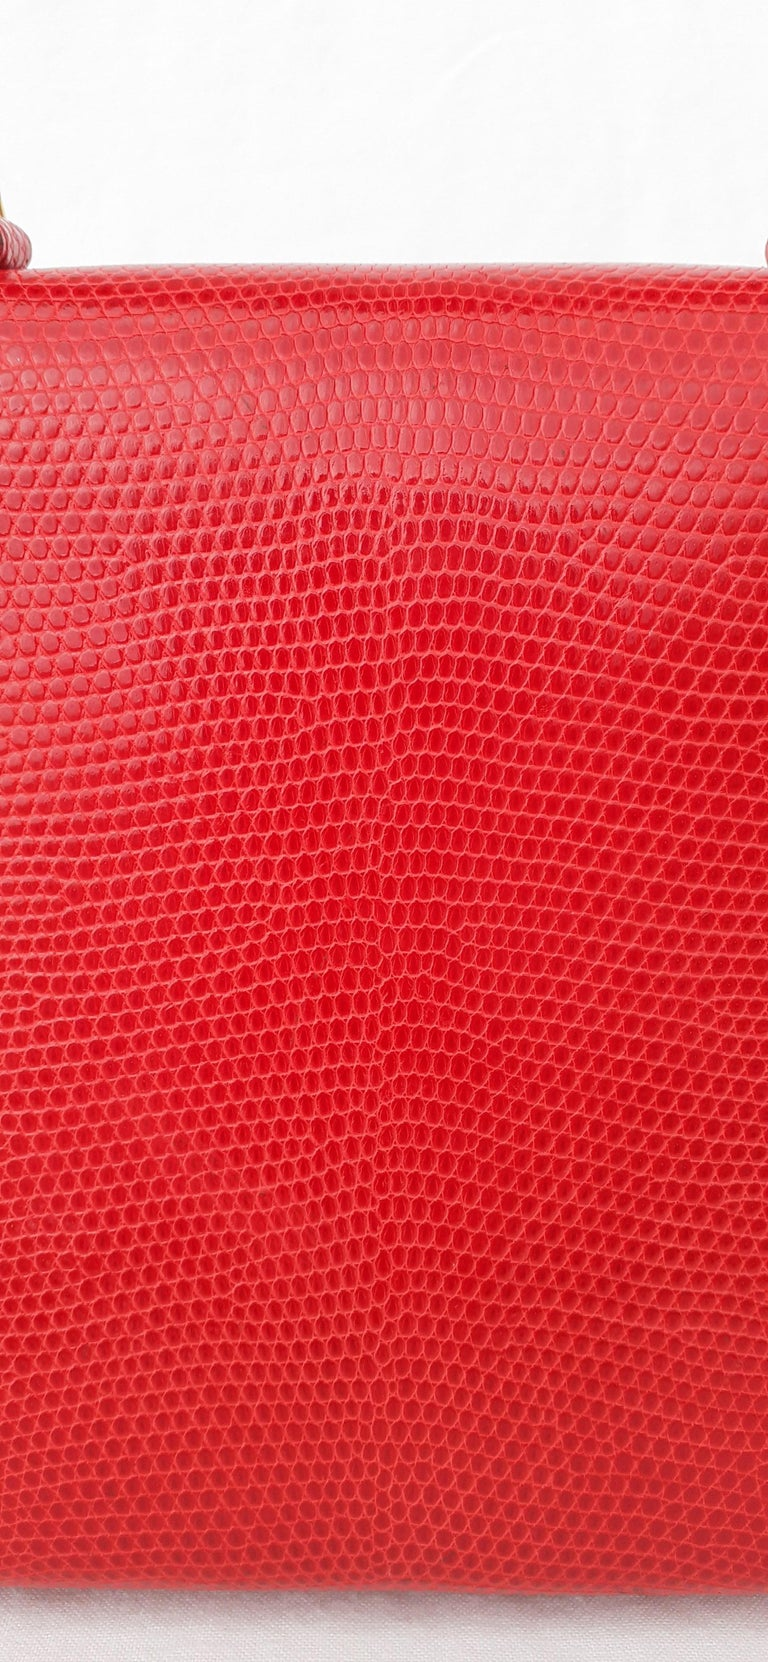 Exceptional Hermès Vintage Mini Kelly Sellier Bag Shiny Red Lizard Gold Hdw 20cm For Sale 13